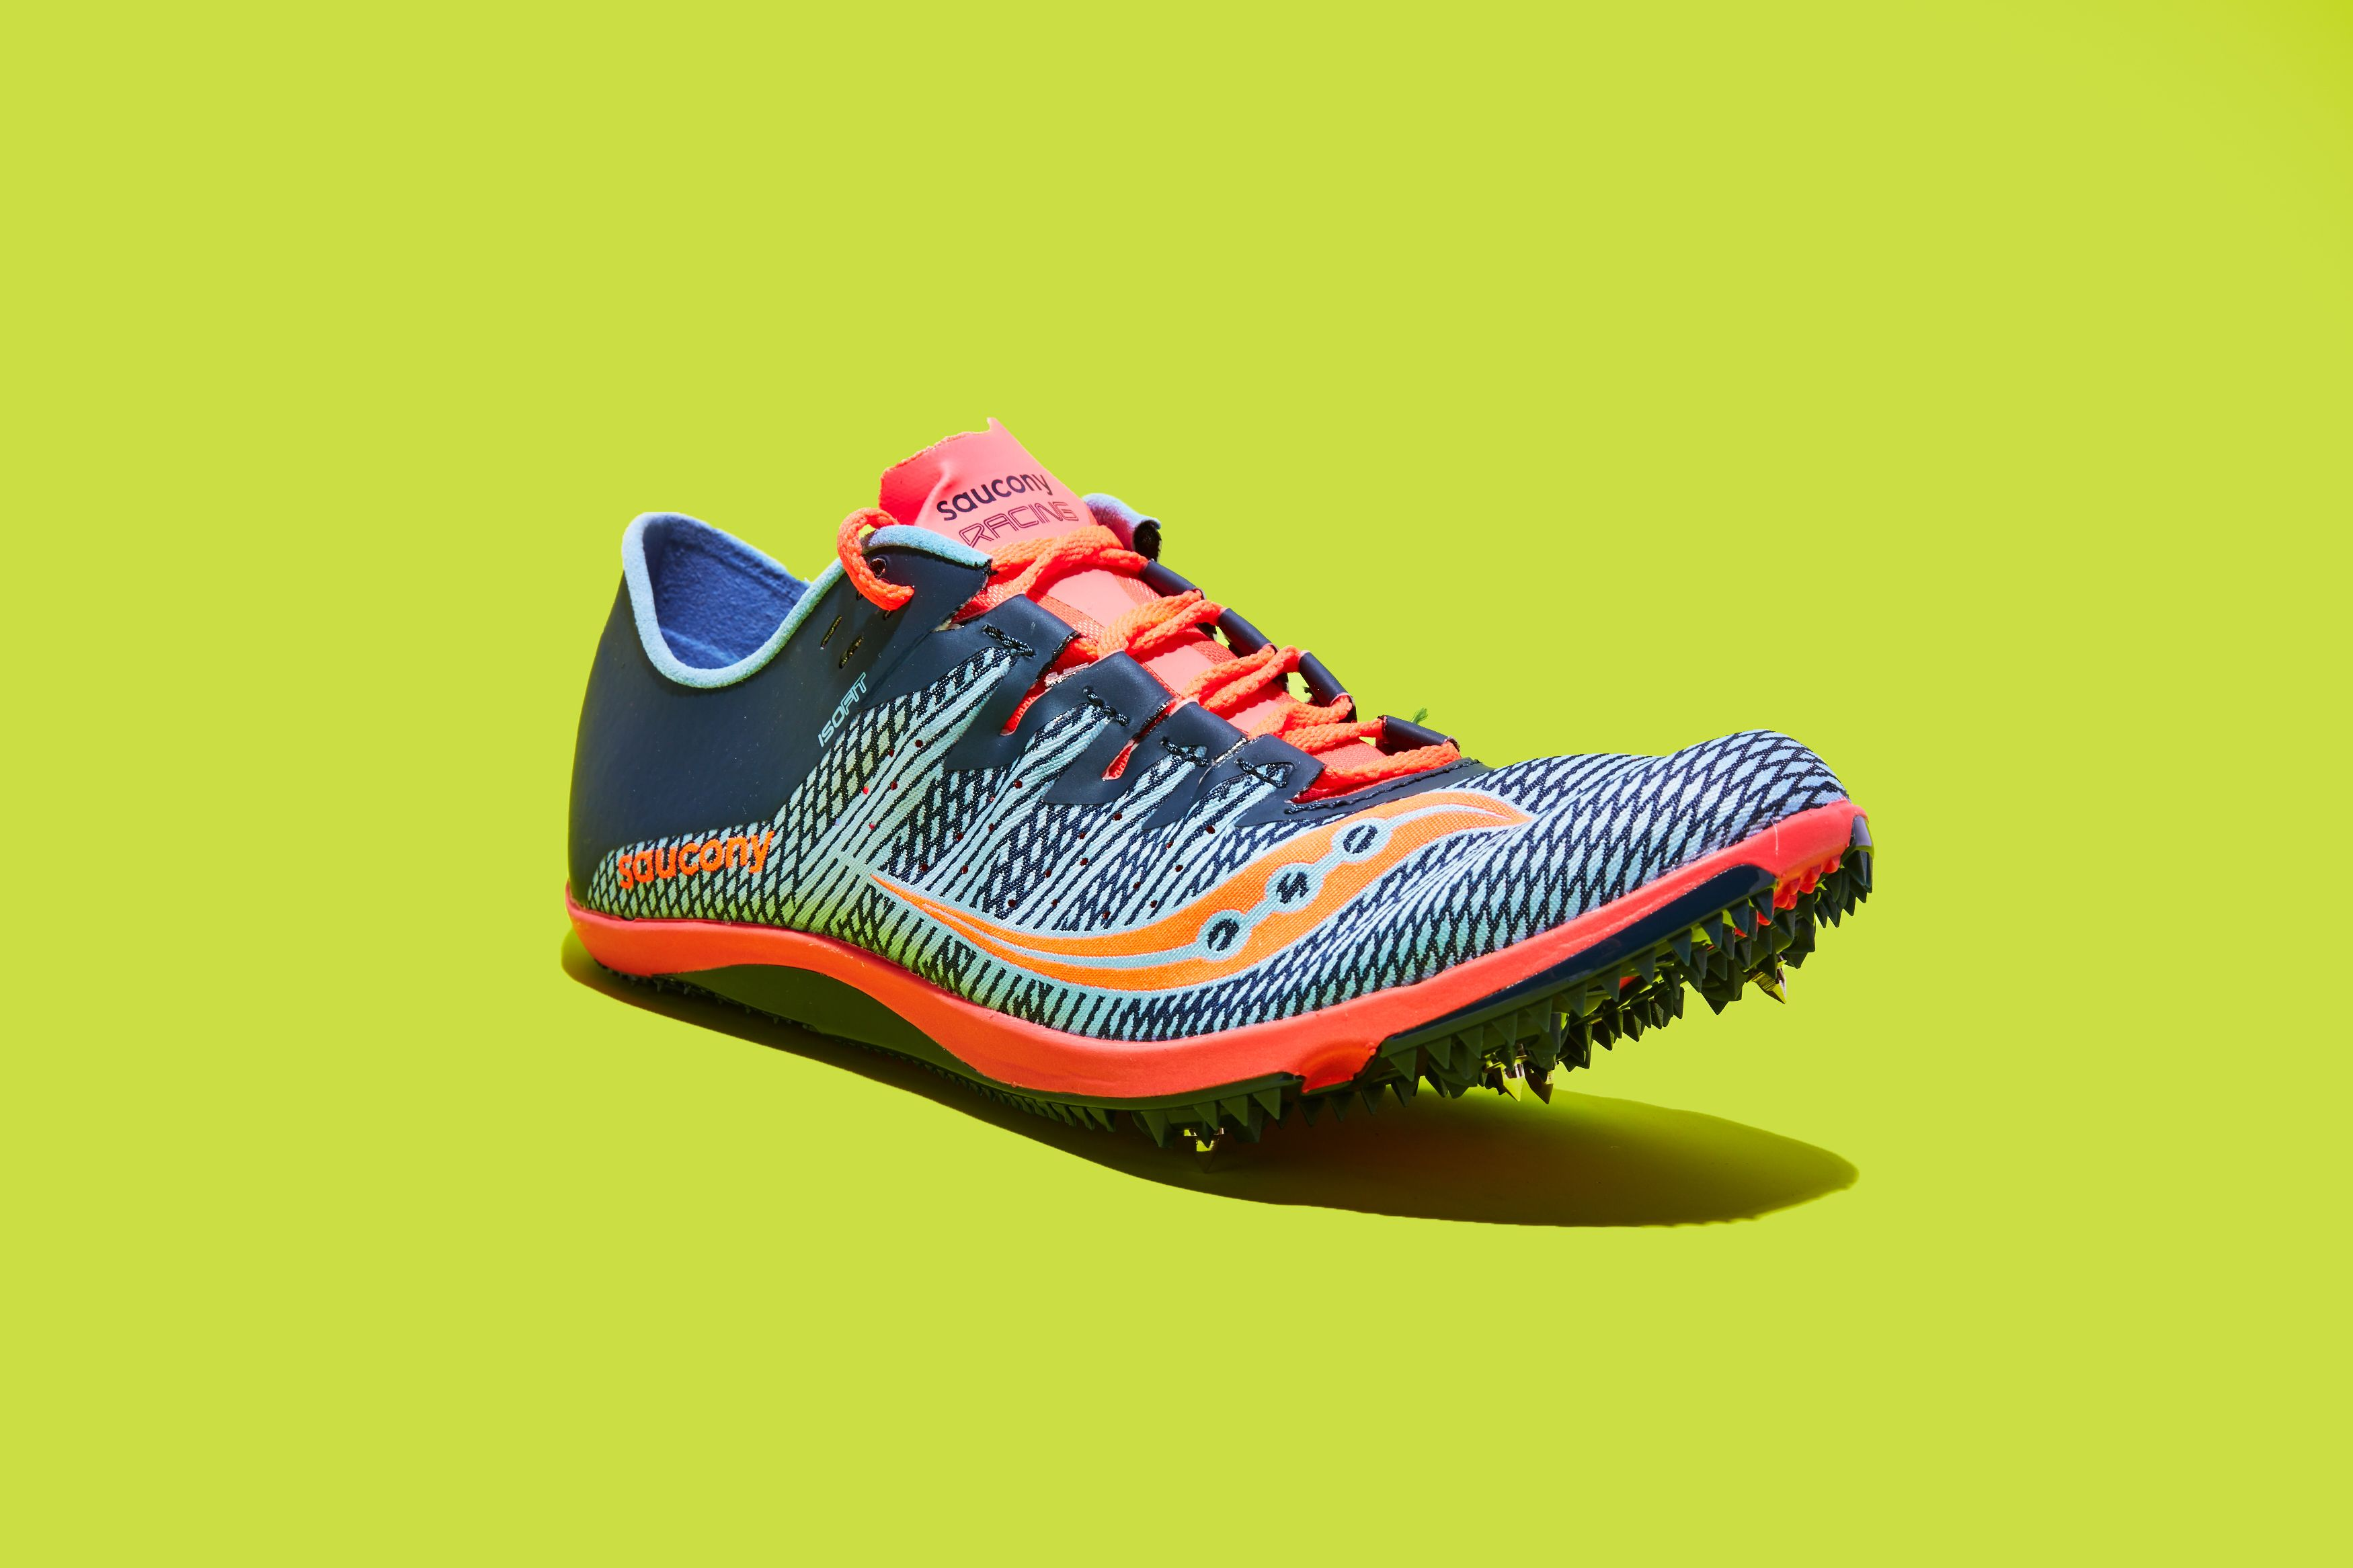 3c91bfbb711d The Saucony Endorphin 2 is the Lightest Track Spike